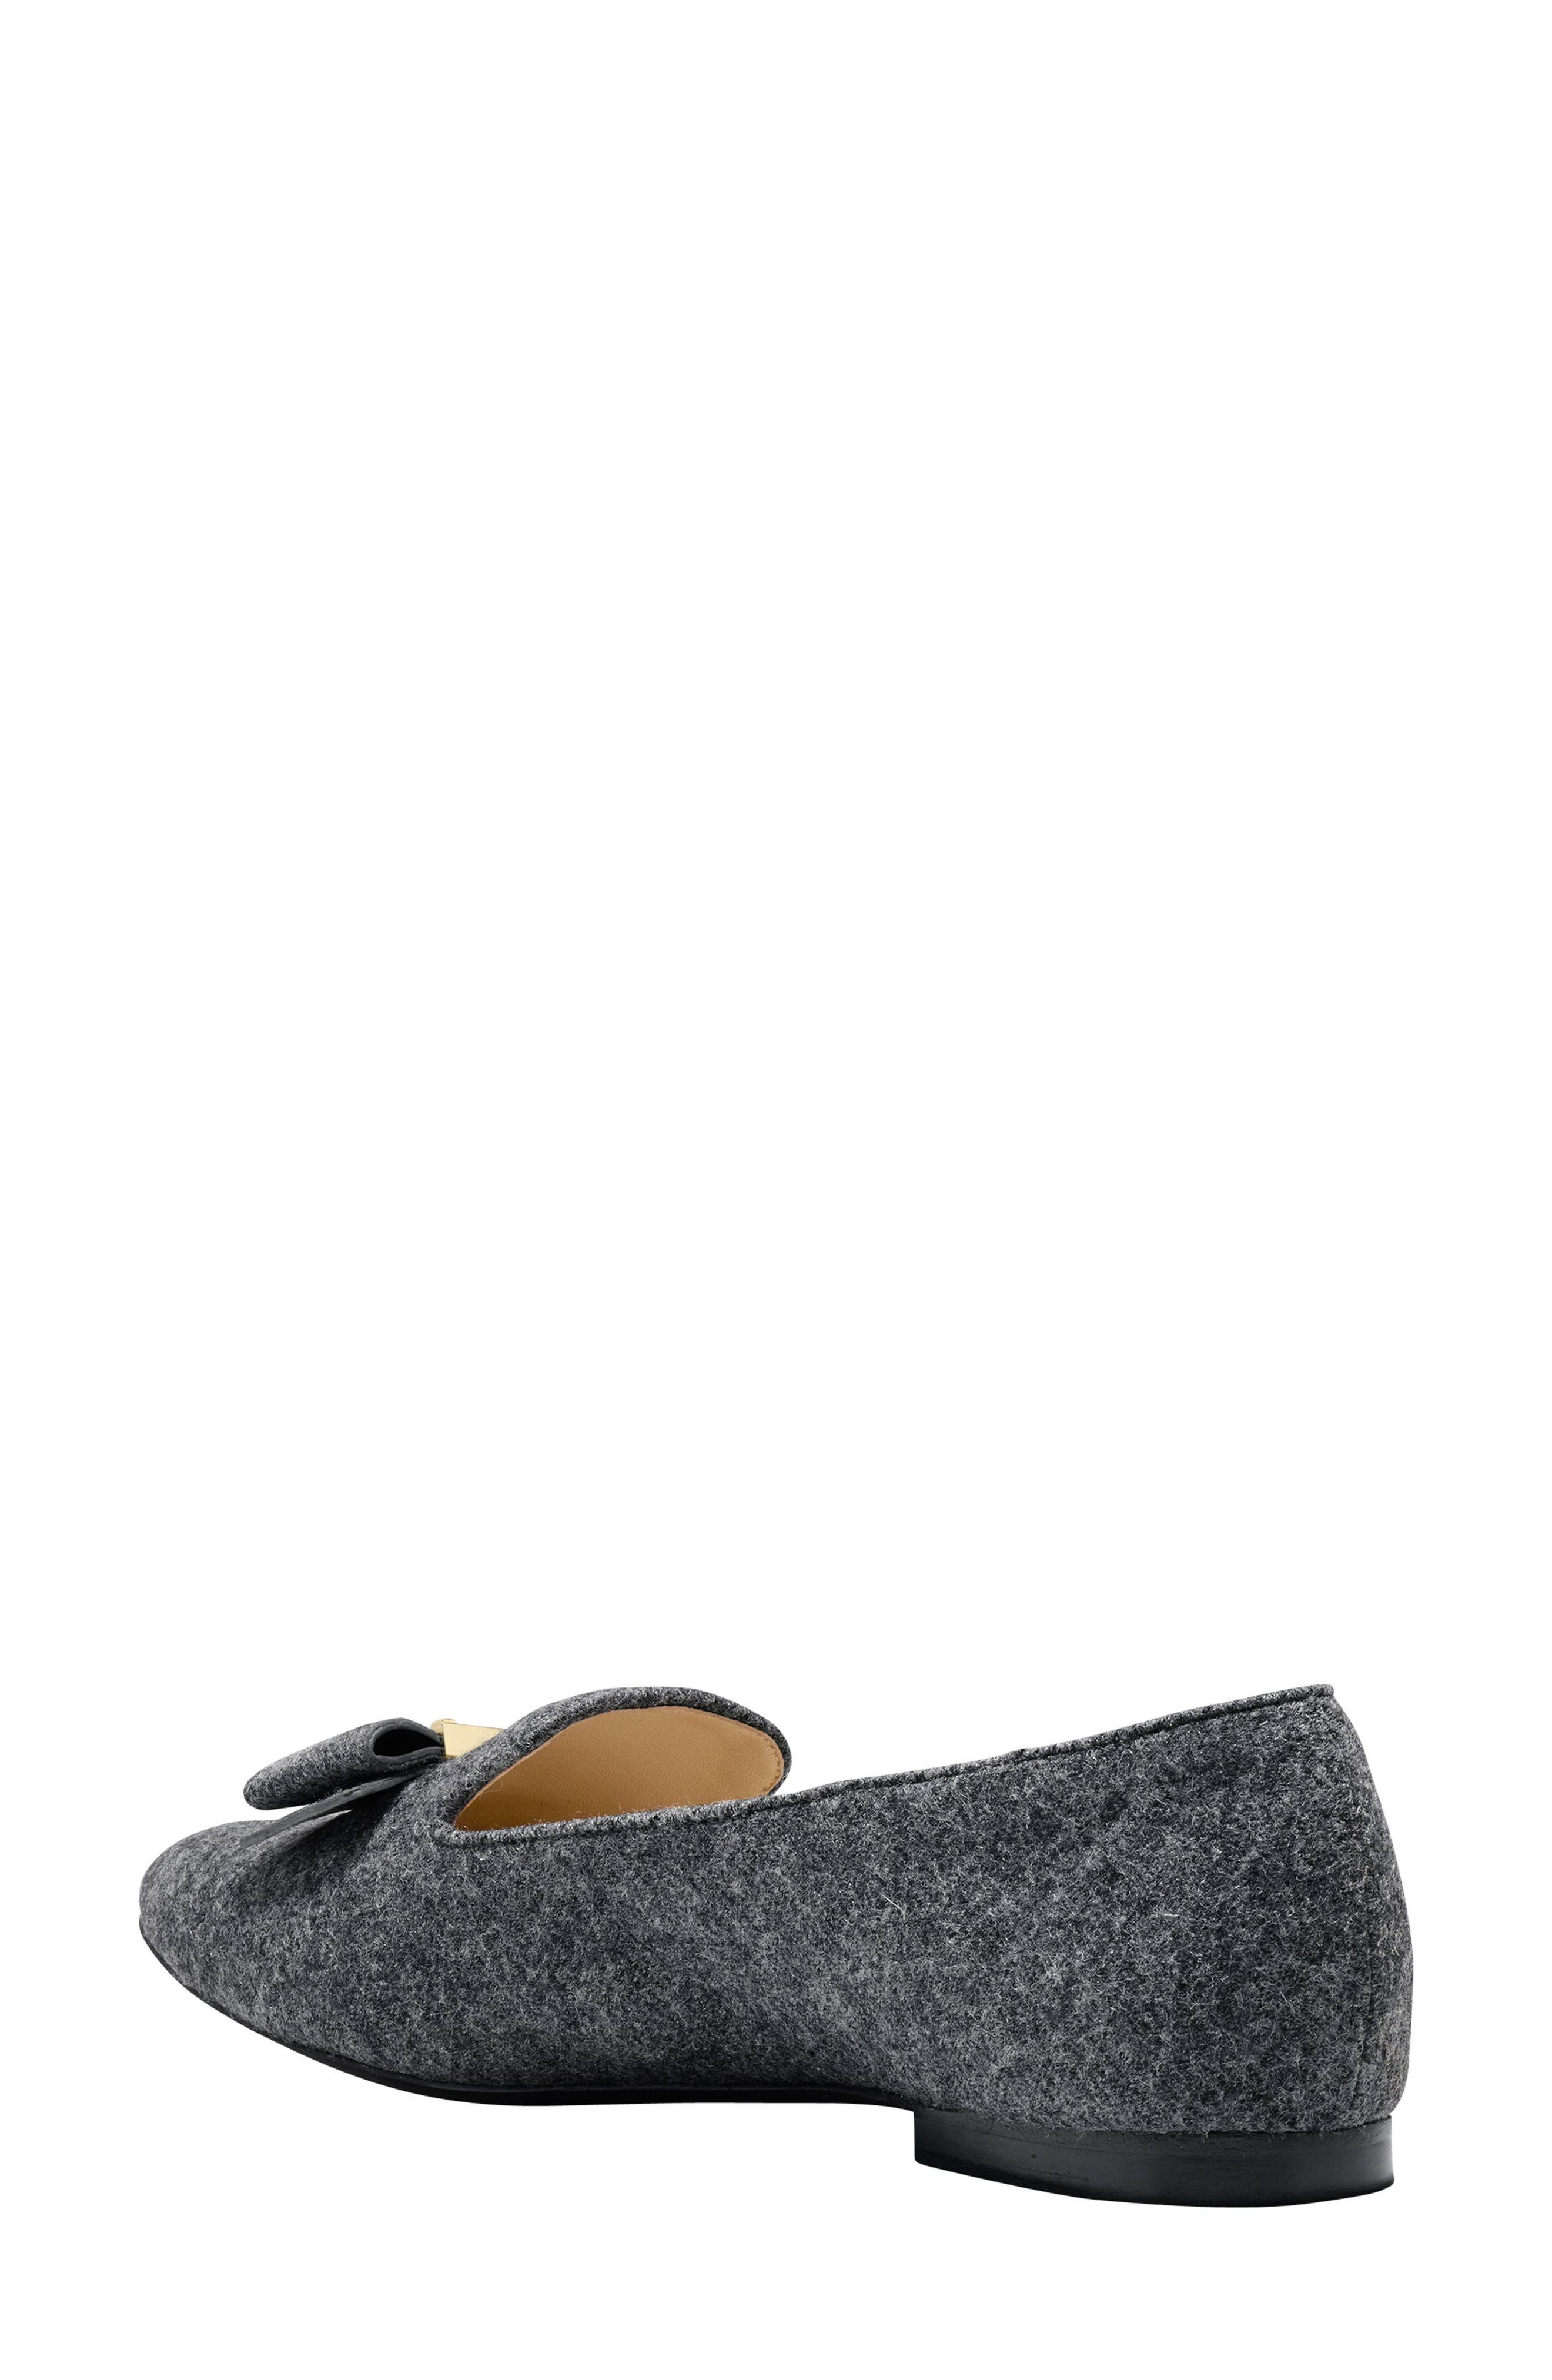 Tali Bow Loafer,                             Alternate thumbnail 2, color,                             Gray Flannel